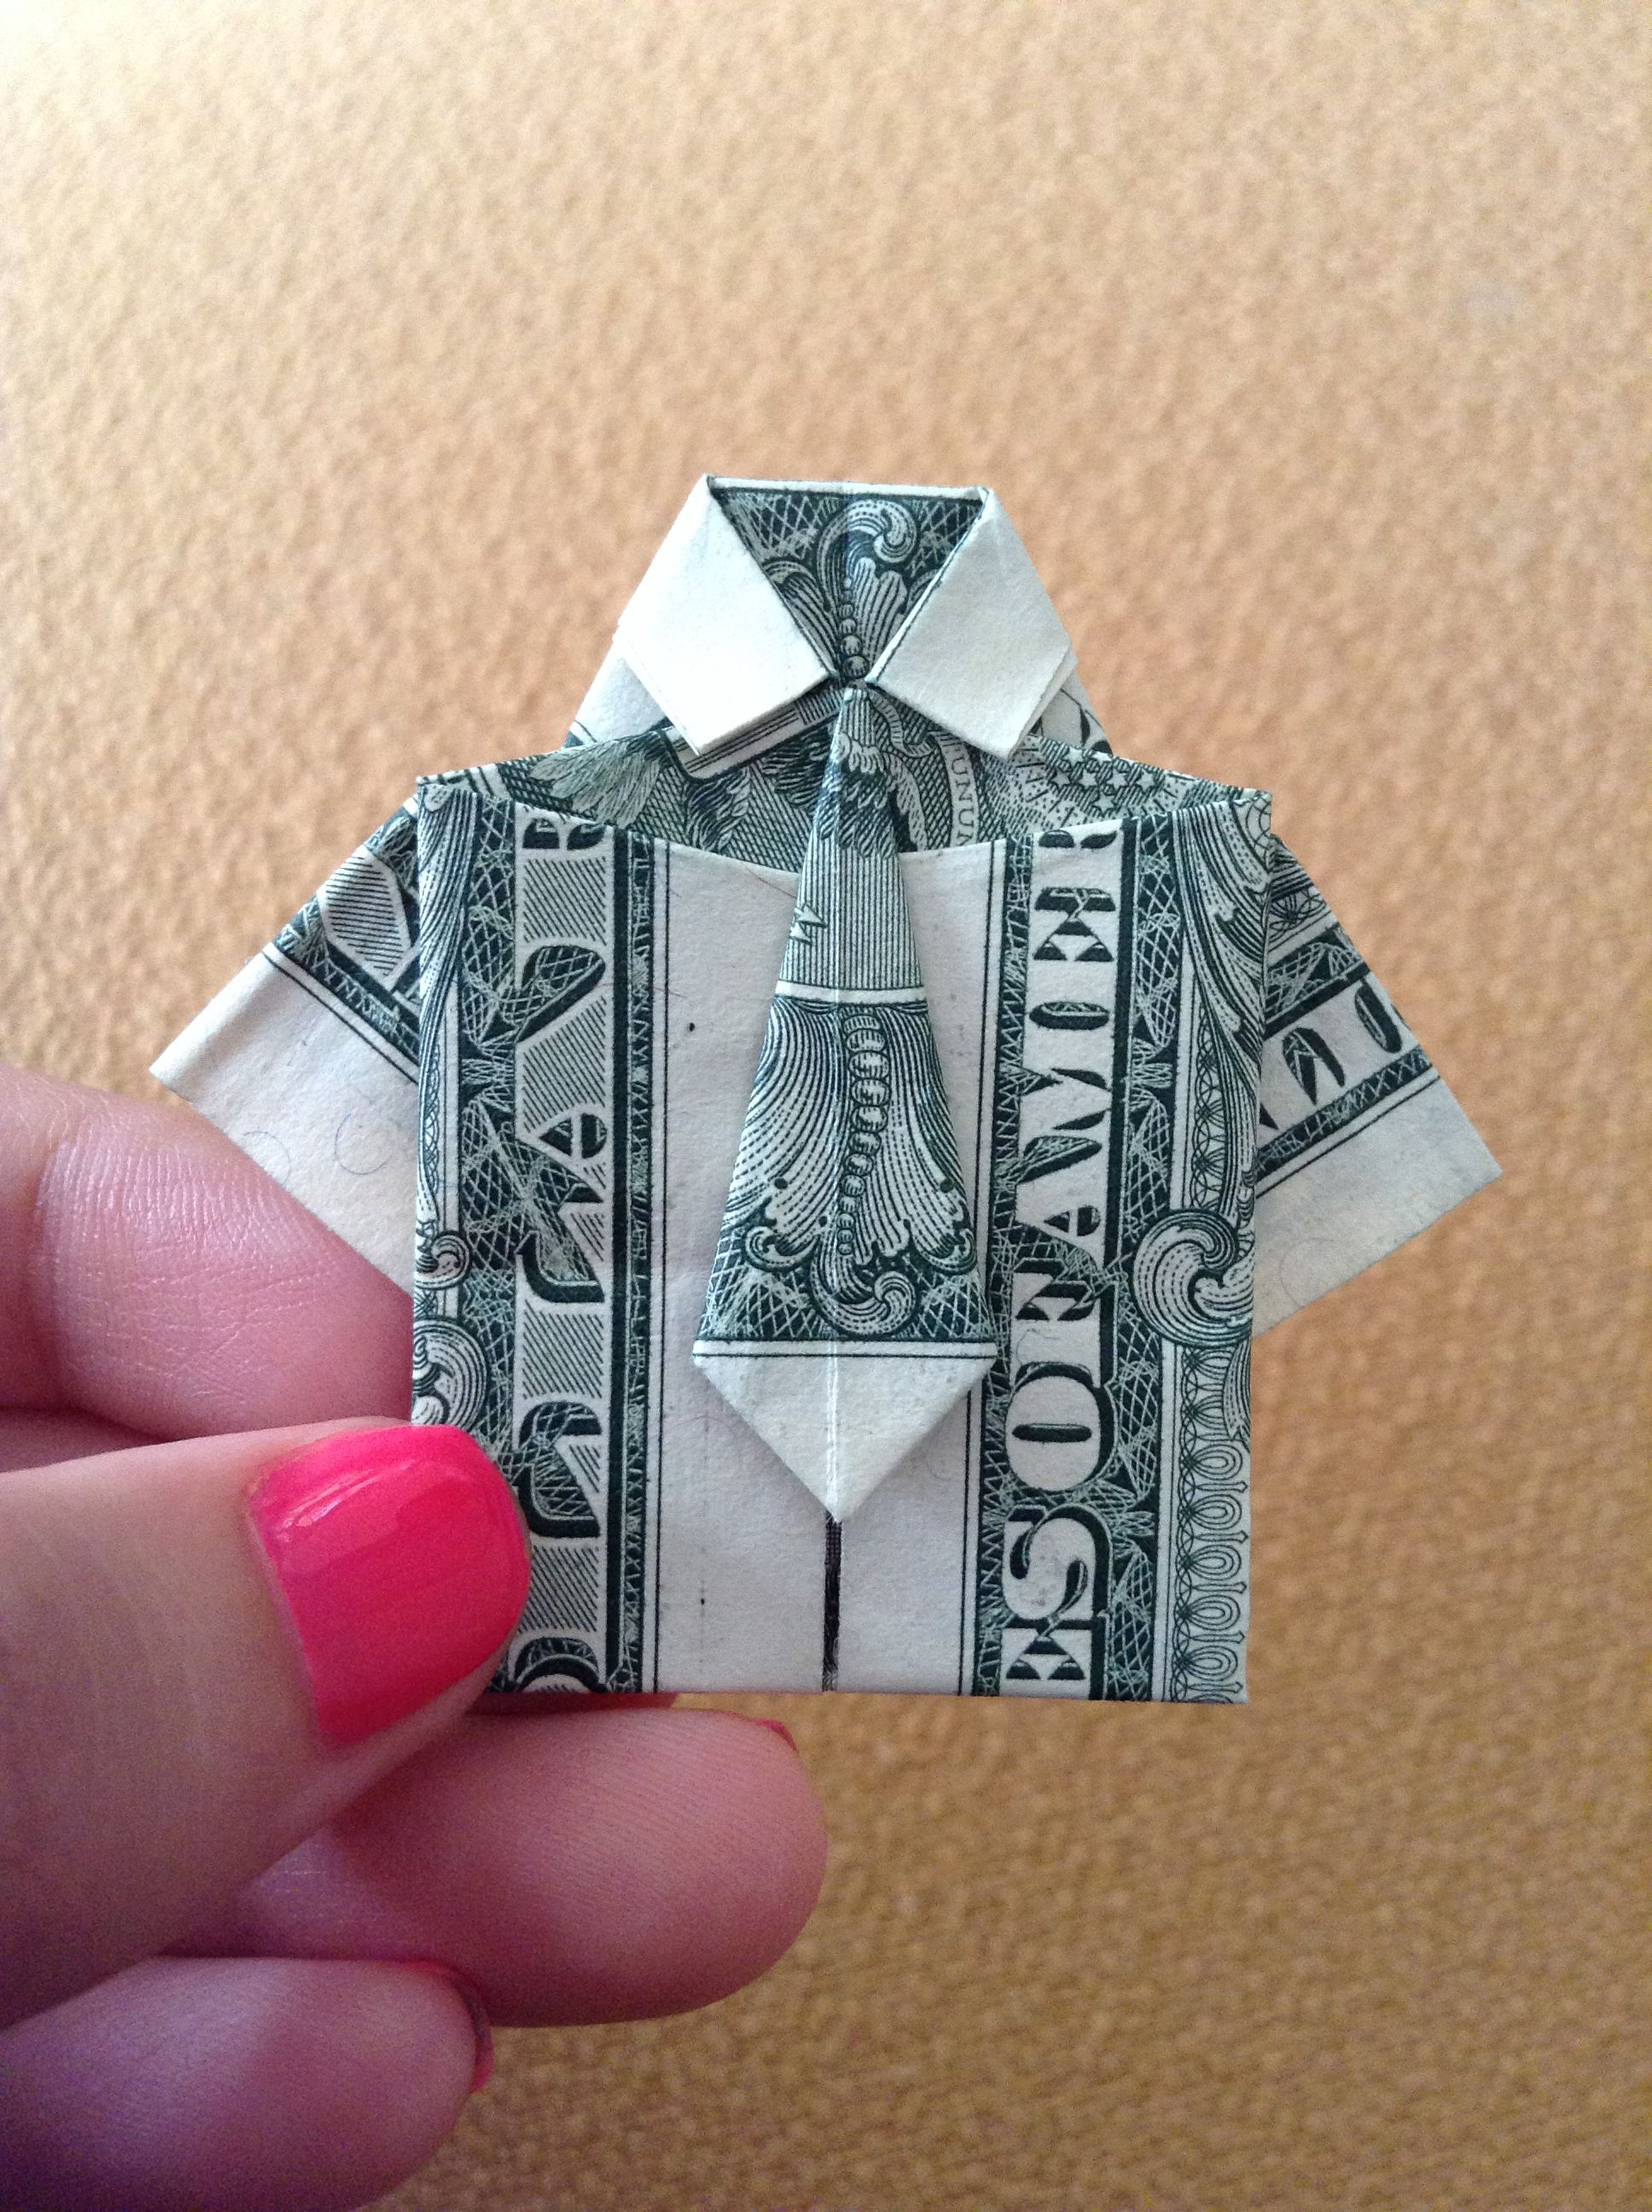 Money Origami Shirt With Tie And PANTS Suit Folded With Two Real ... | 2592x1936